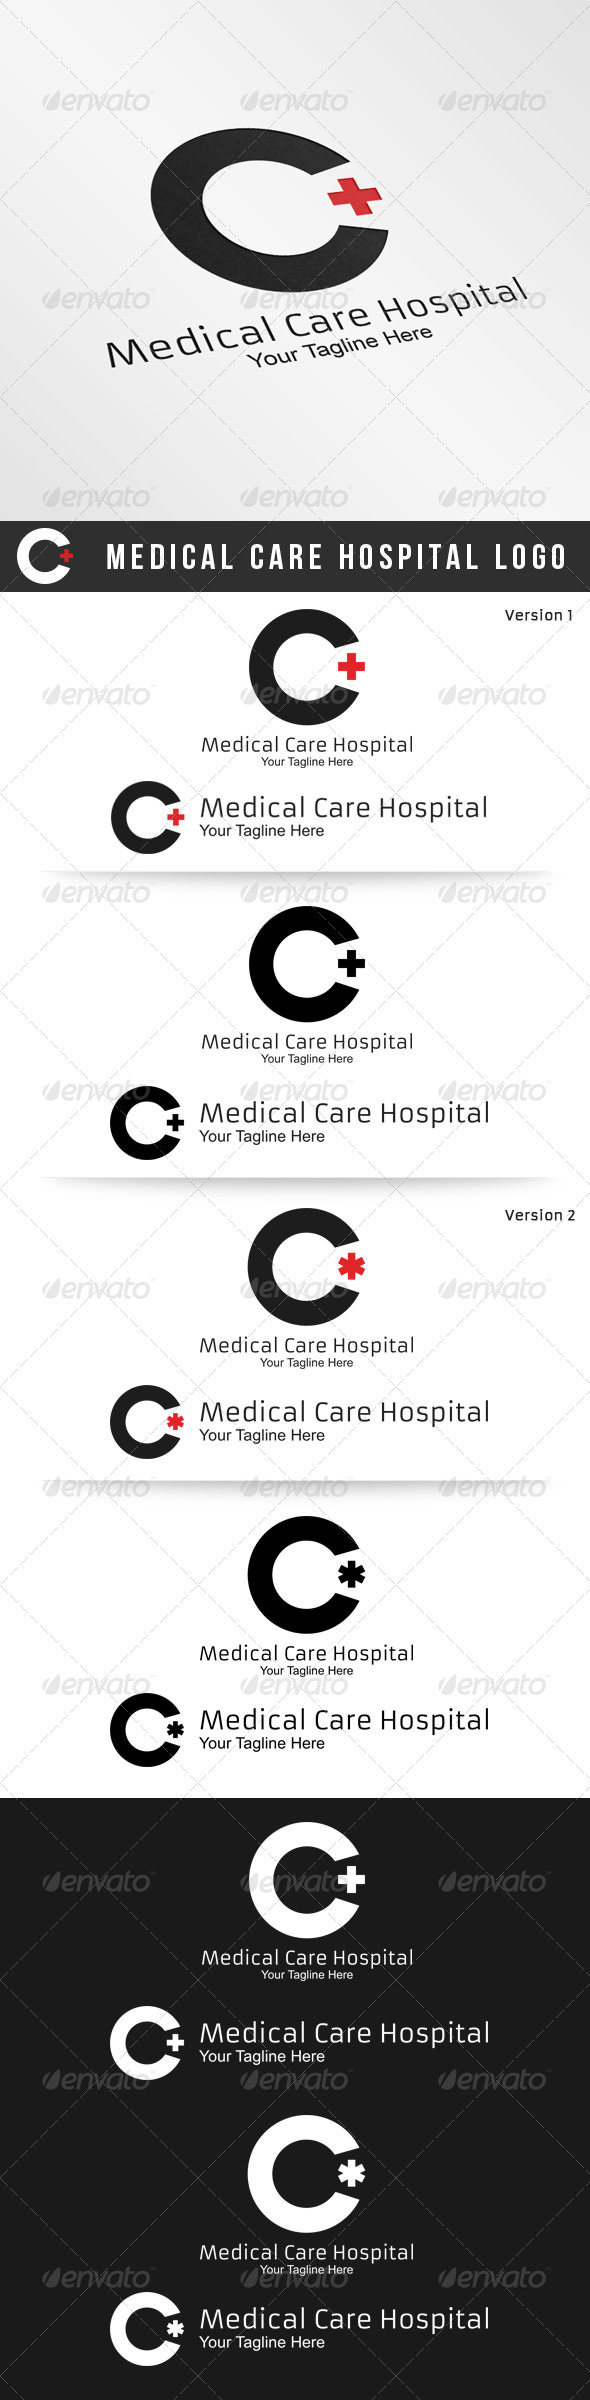 GraphicRiver Medical Care Hospital Logo Template 5297521